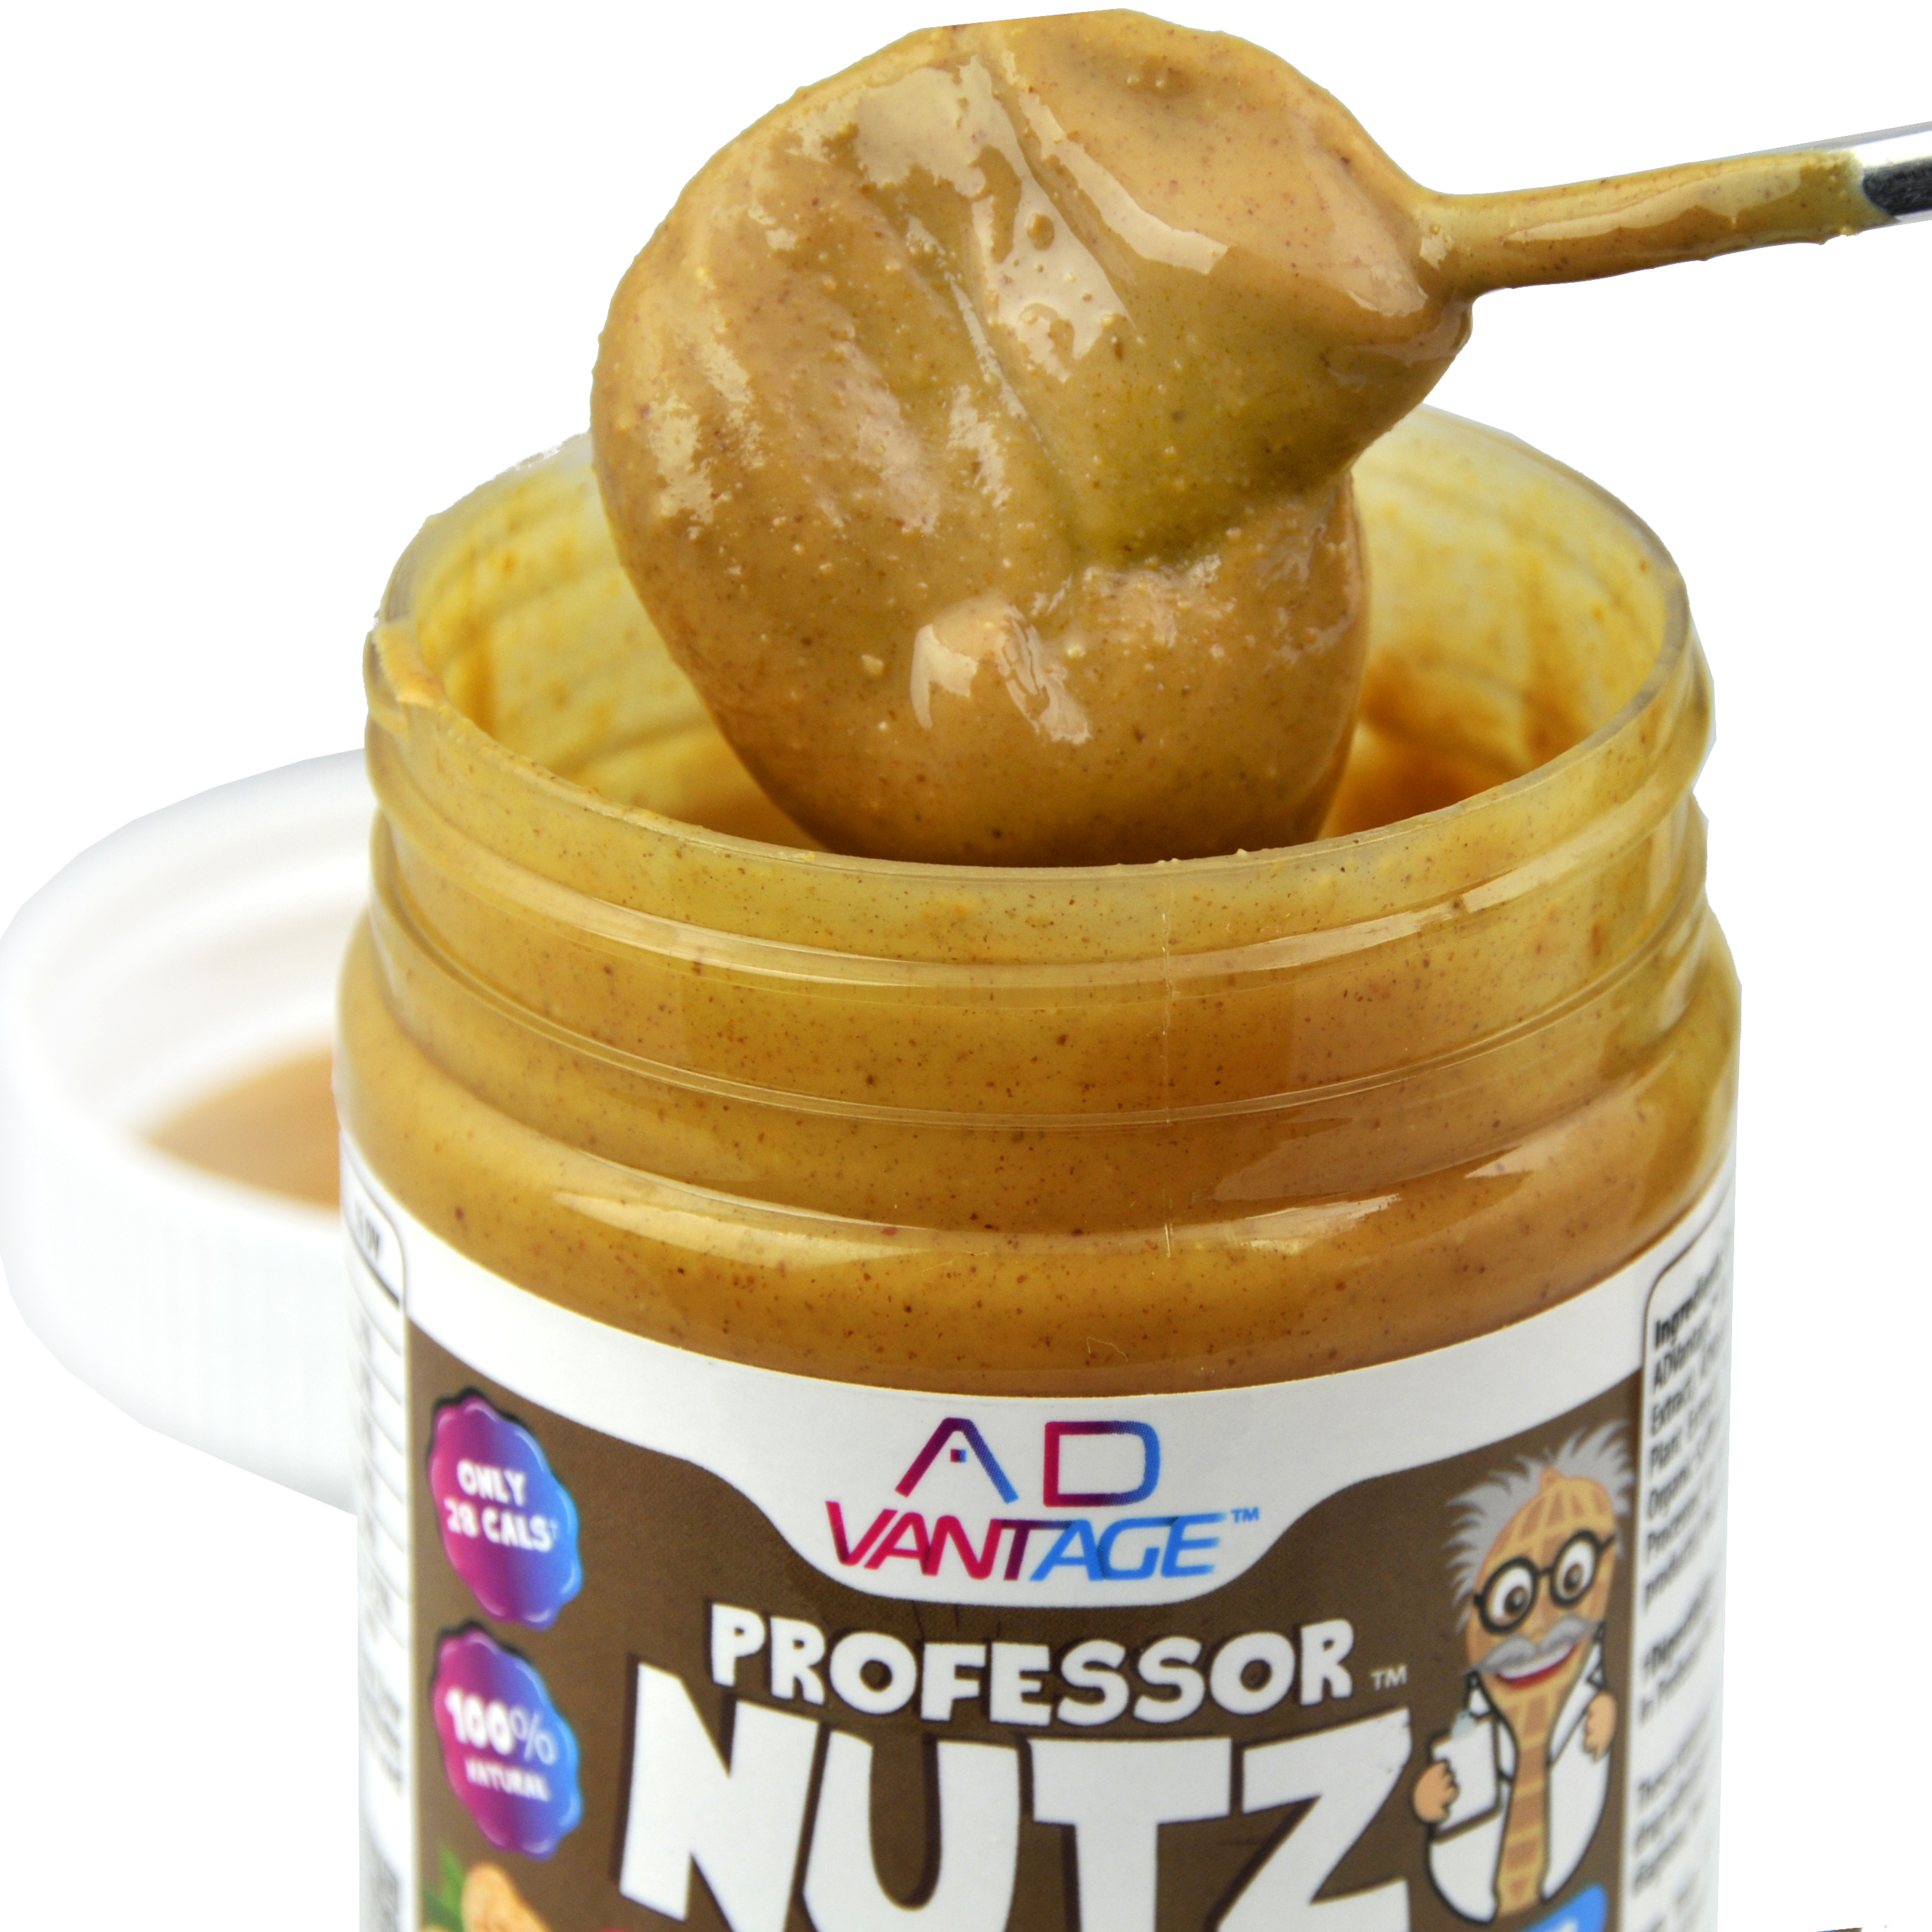 AD Vantage™ Professor Nutz™ Peanut Butter review